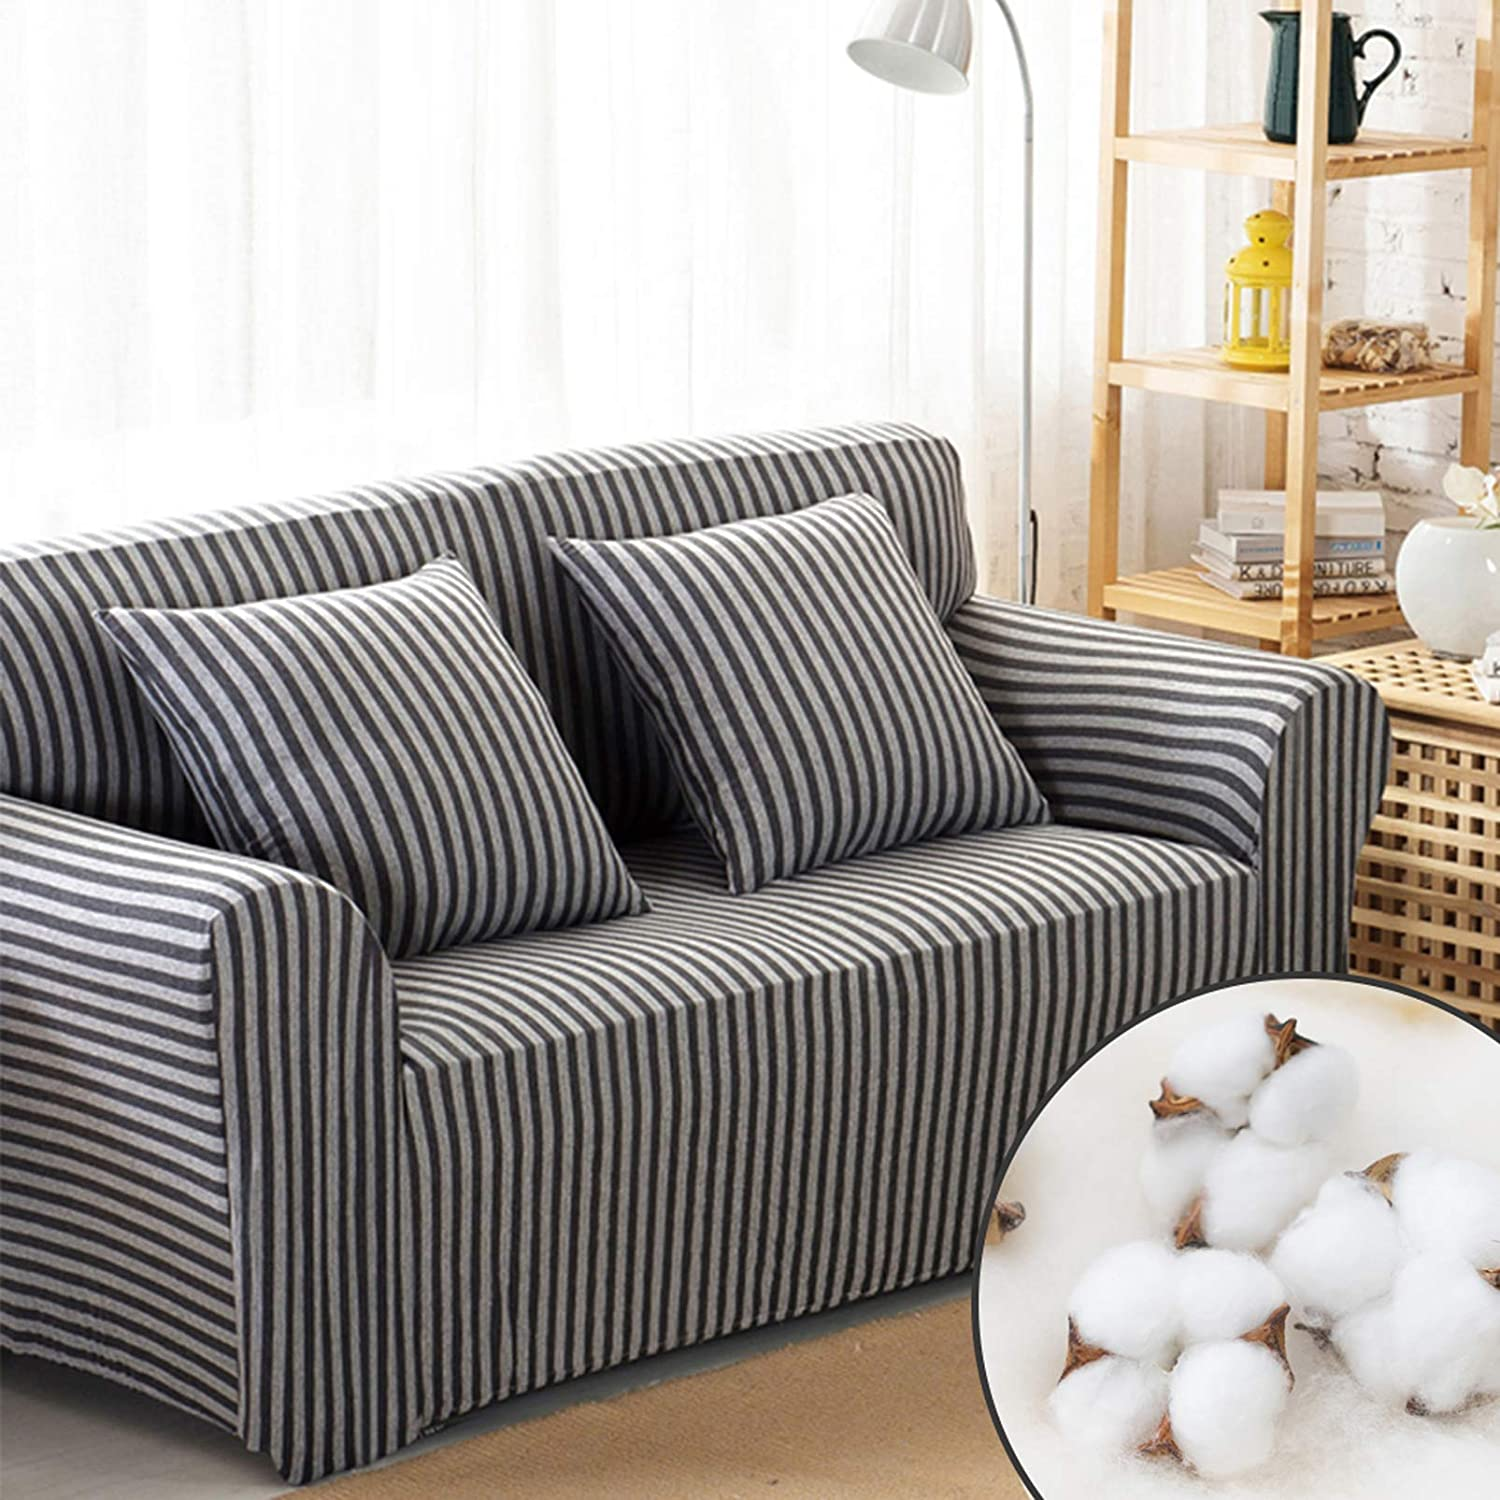 Homcosan Stretch Sofa Slipcovers Cotton Pattern Stripe Sofa Cover with 2 Pillowcases for 2 Cushion Couch Furniture Pet Protector Anti-Slip Stylish Sectional Couch(Gray, Loveseat)